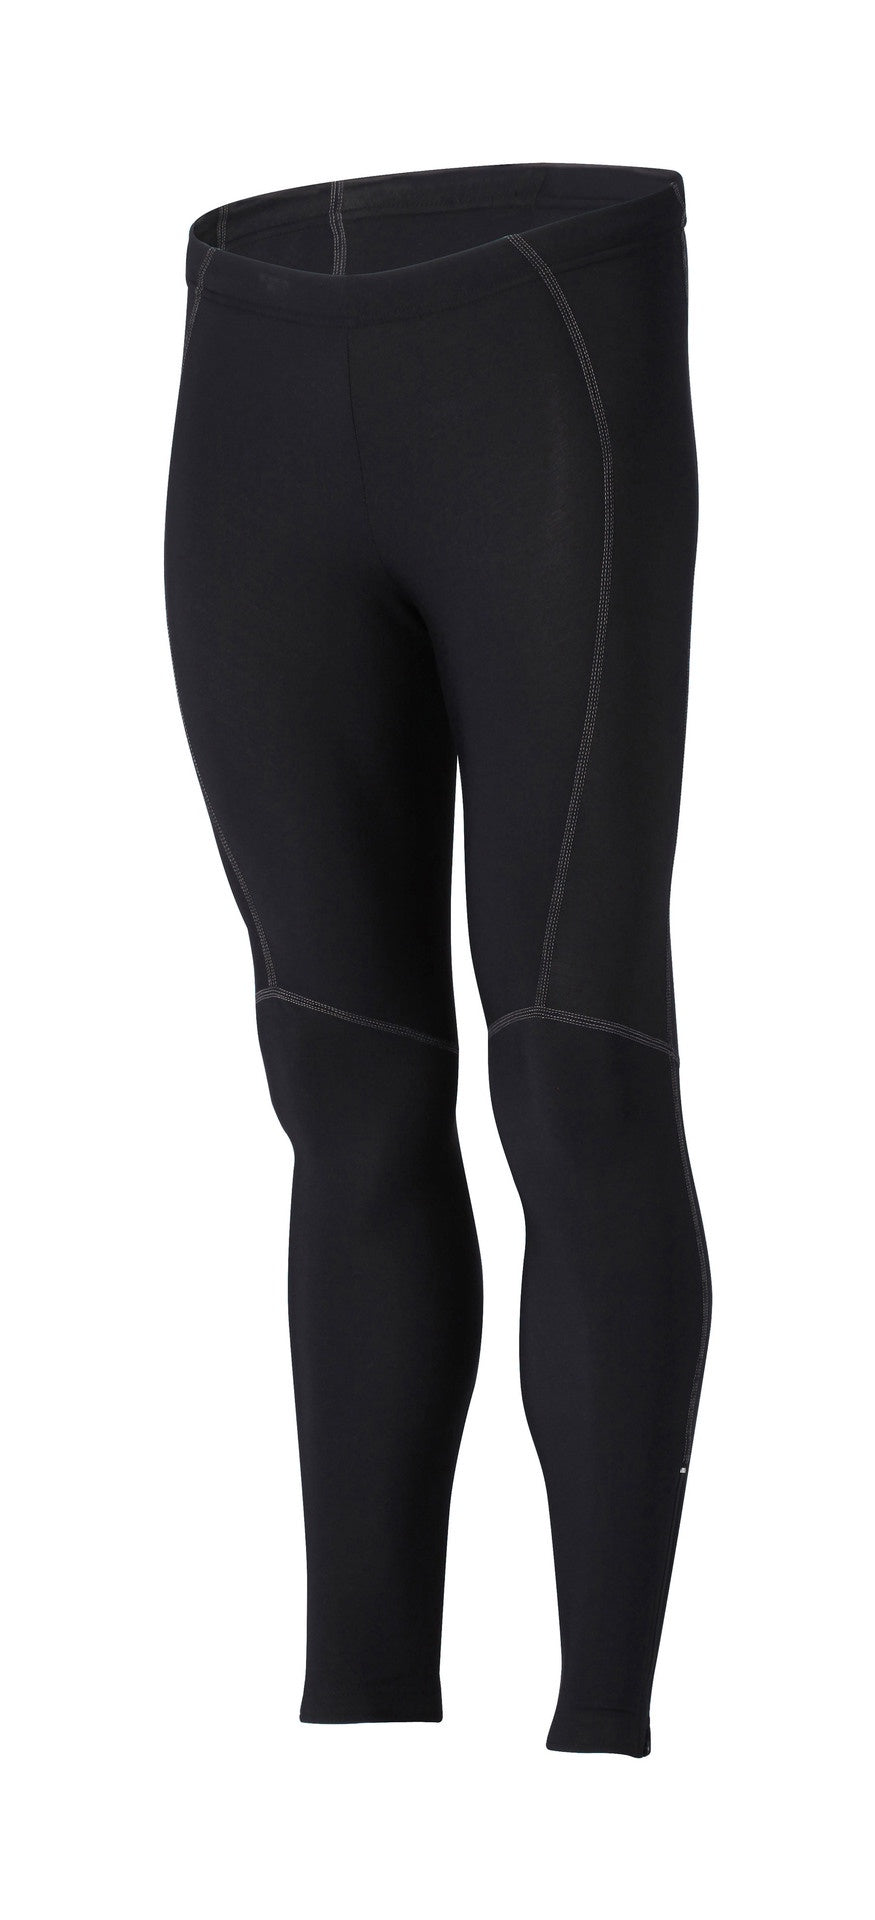 Quadra Tight Black (L)